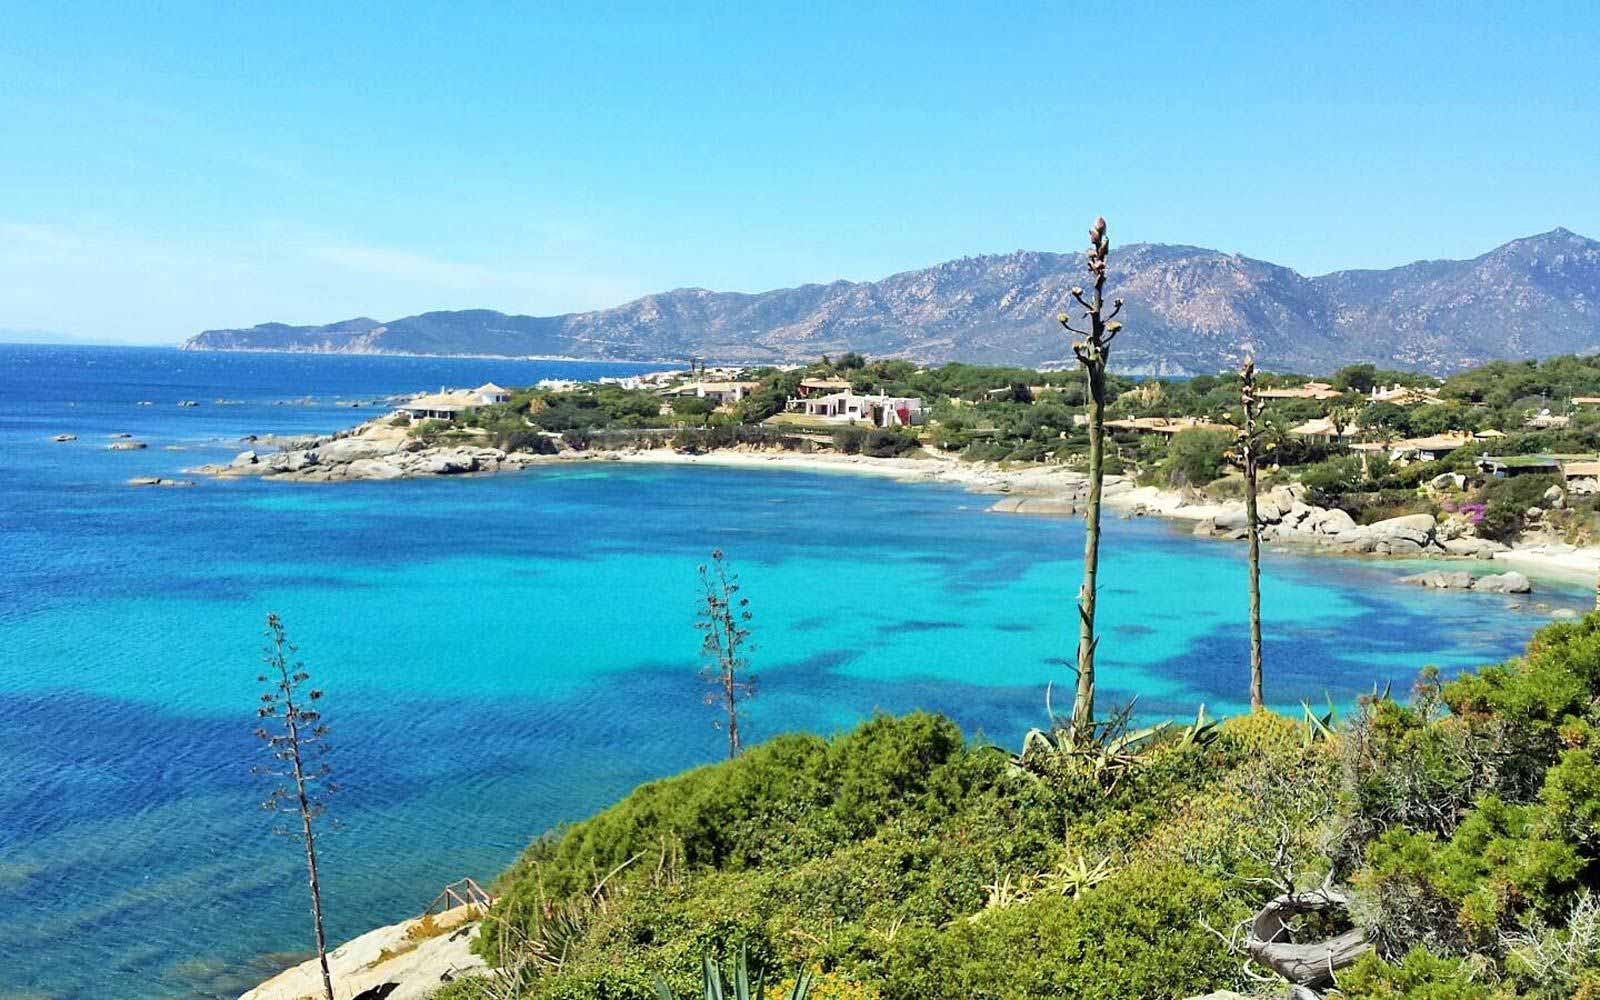 Bay view of Hotel Cala Caterina